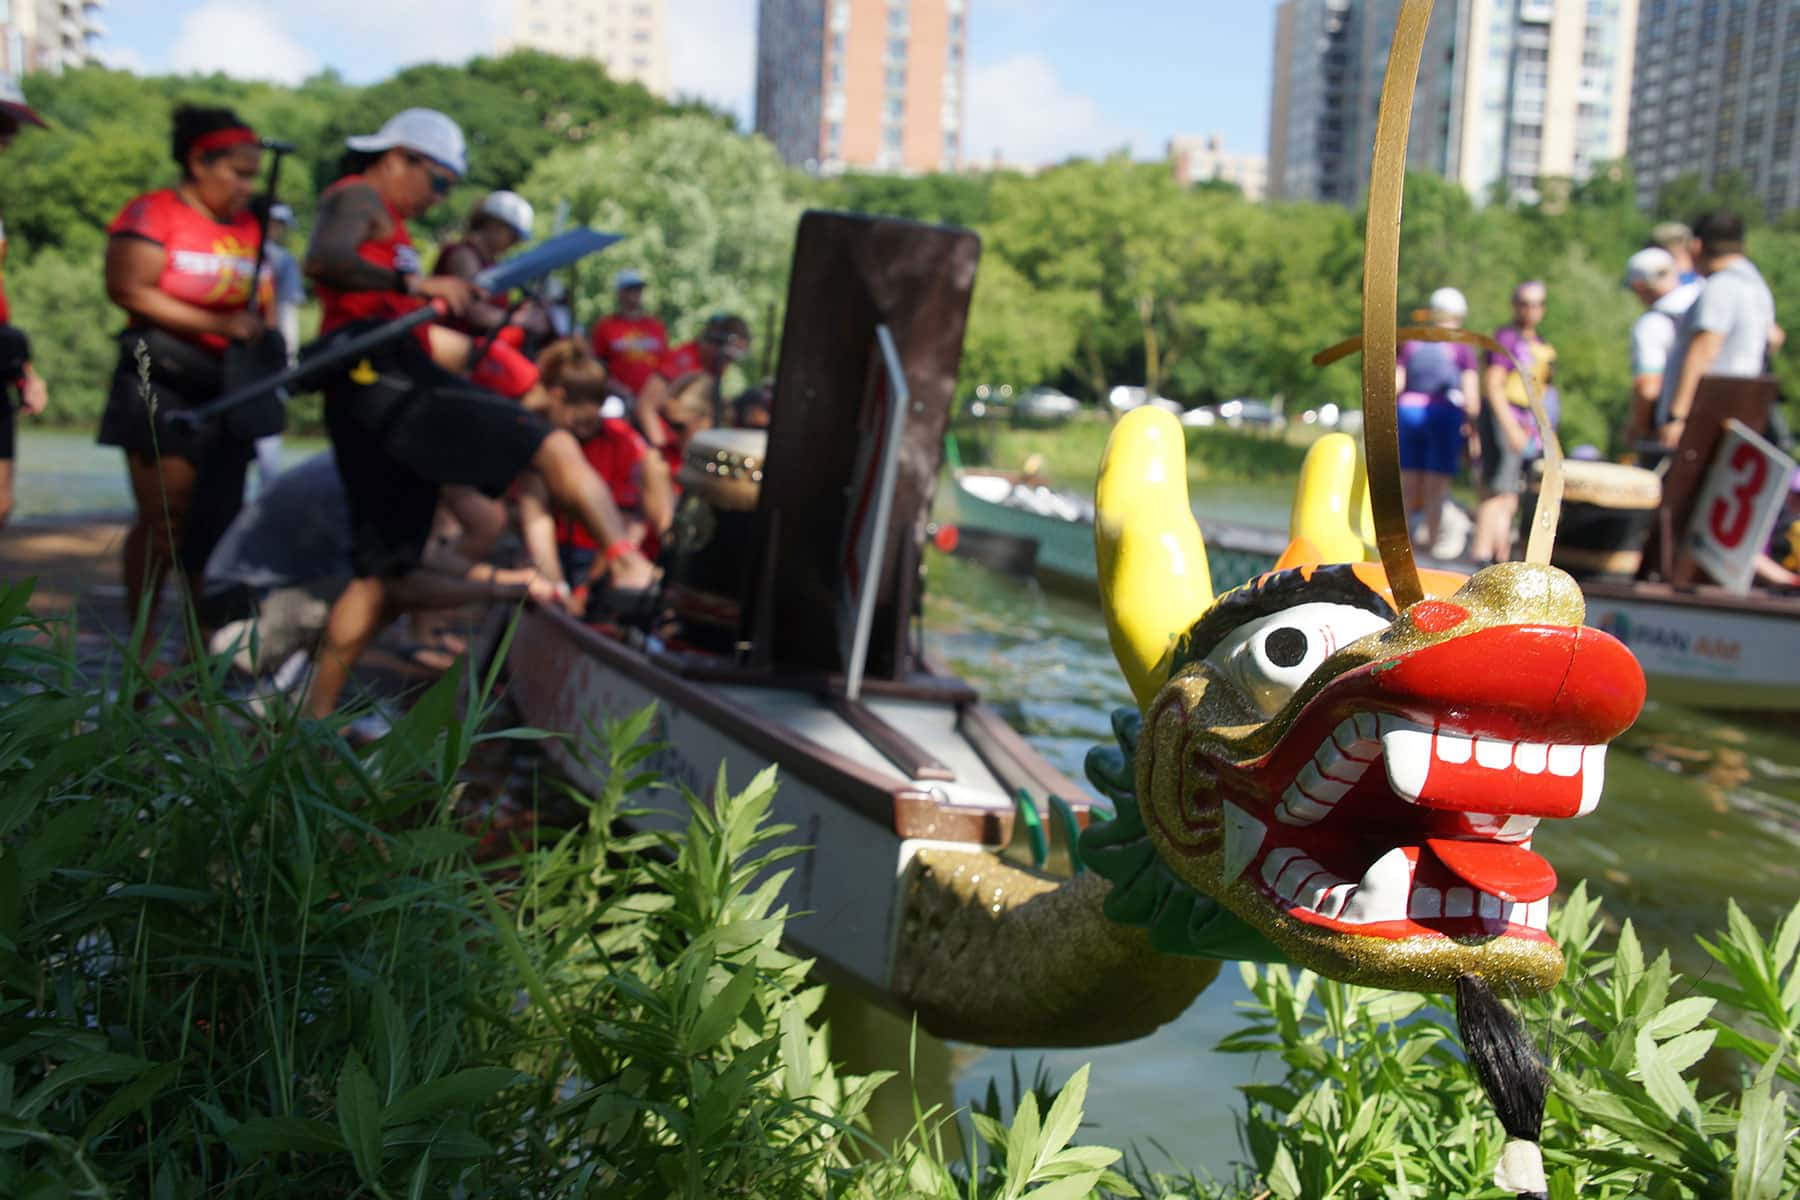 073016_DragonBoatRace_0075